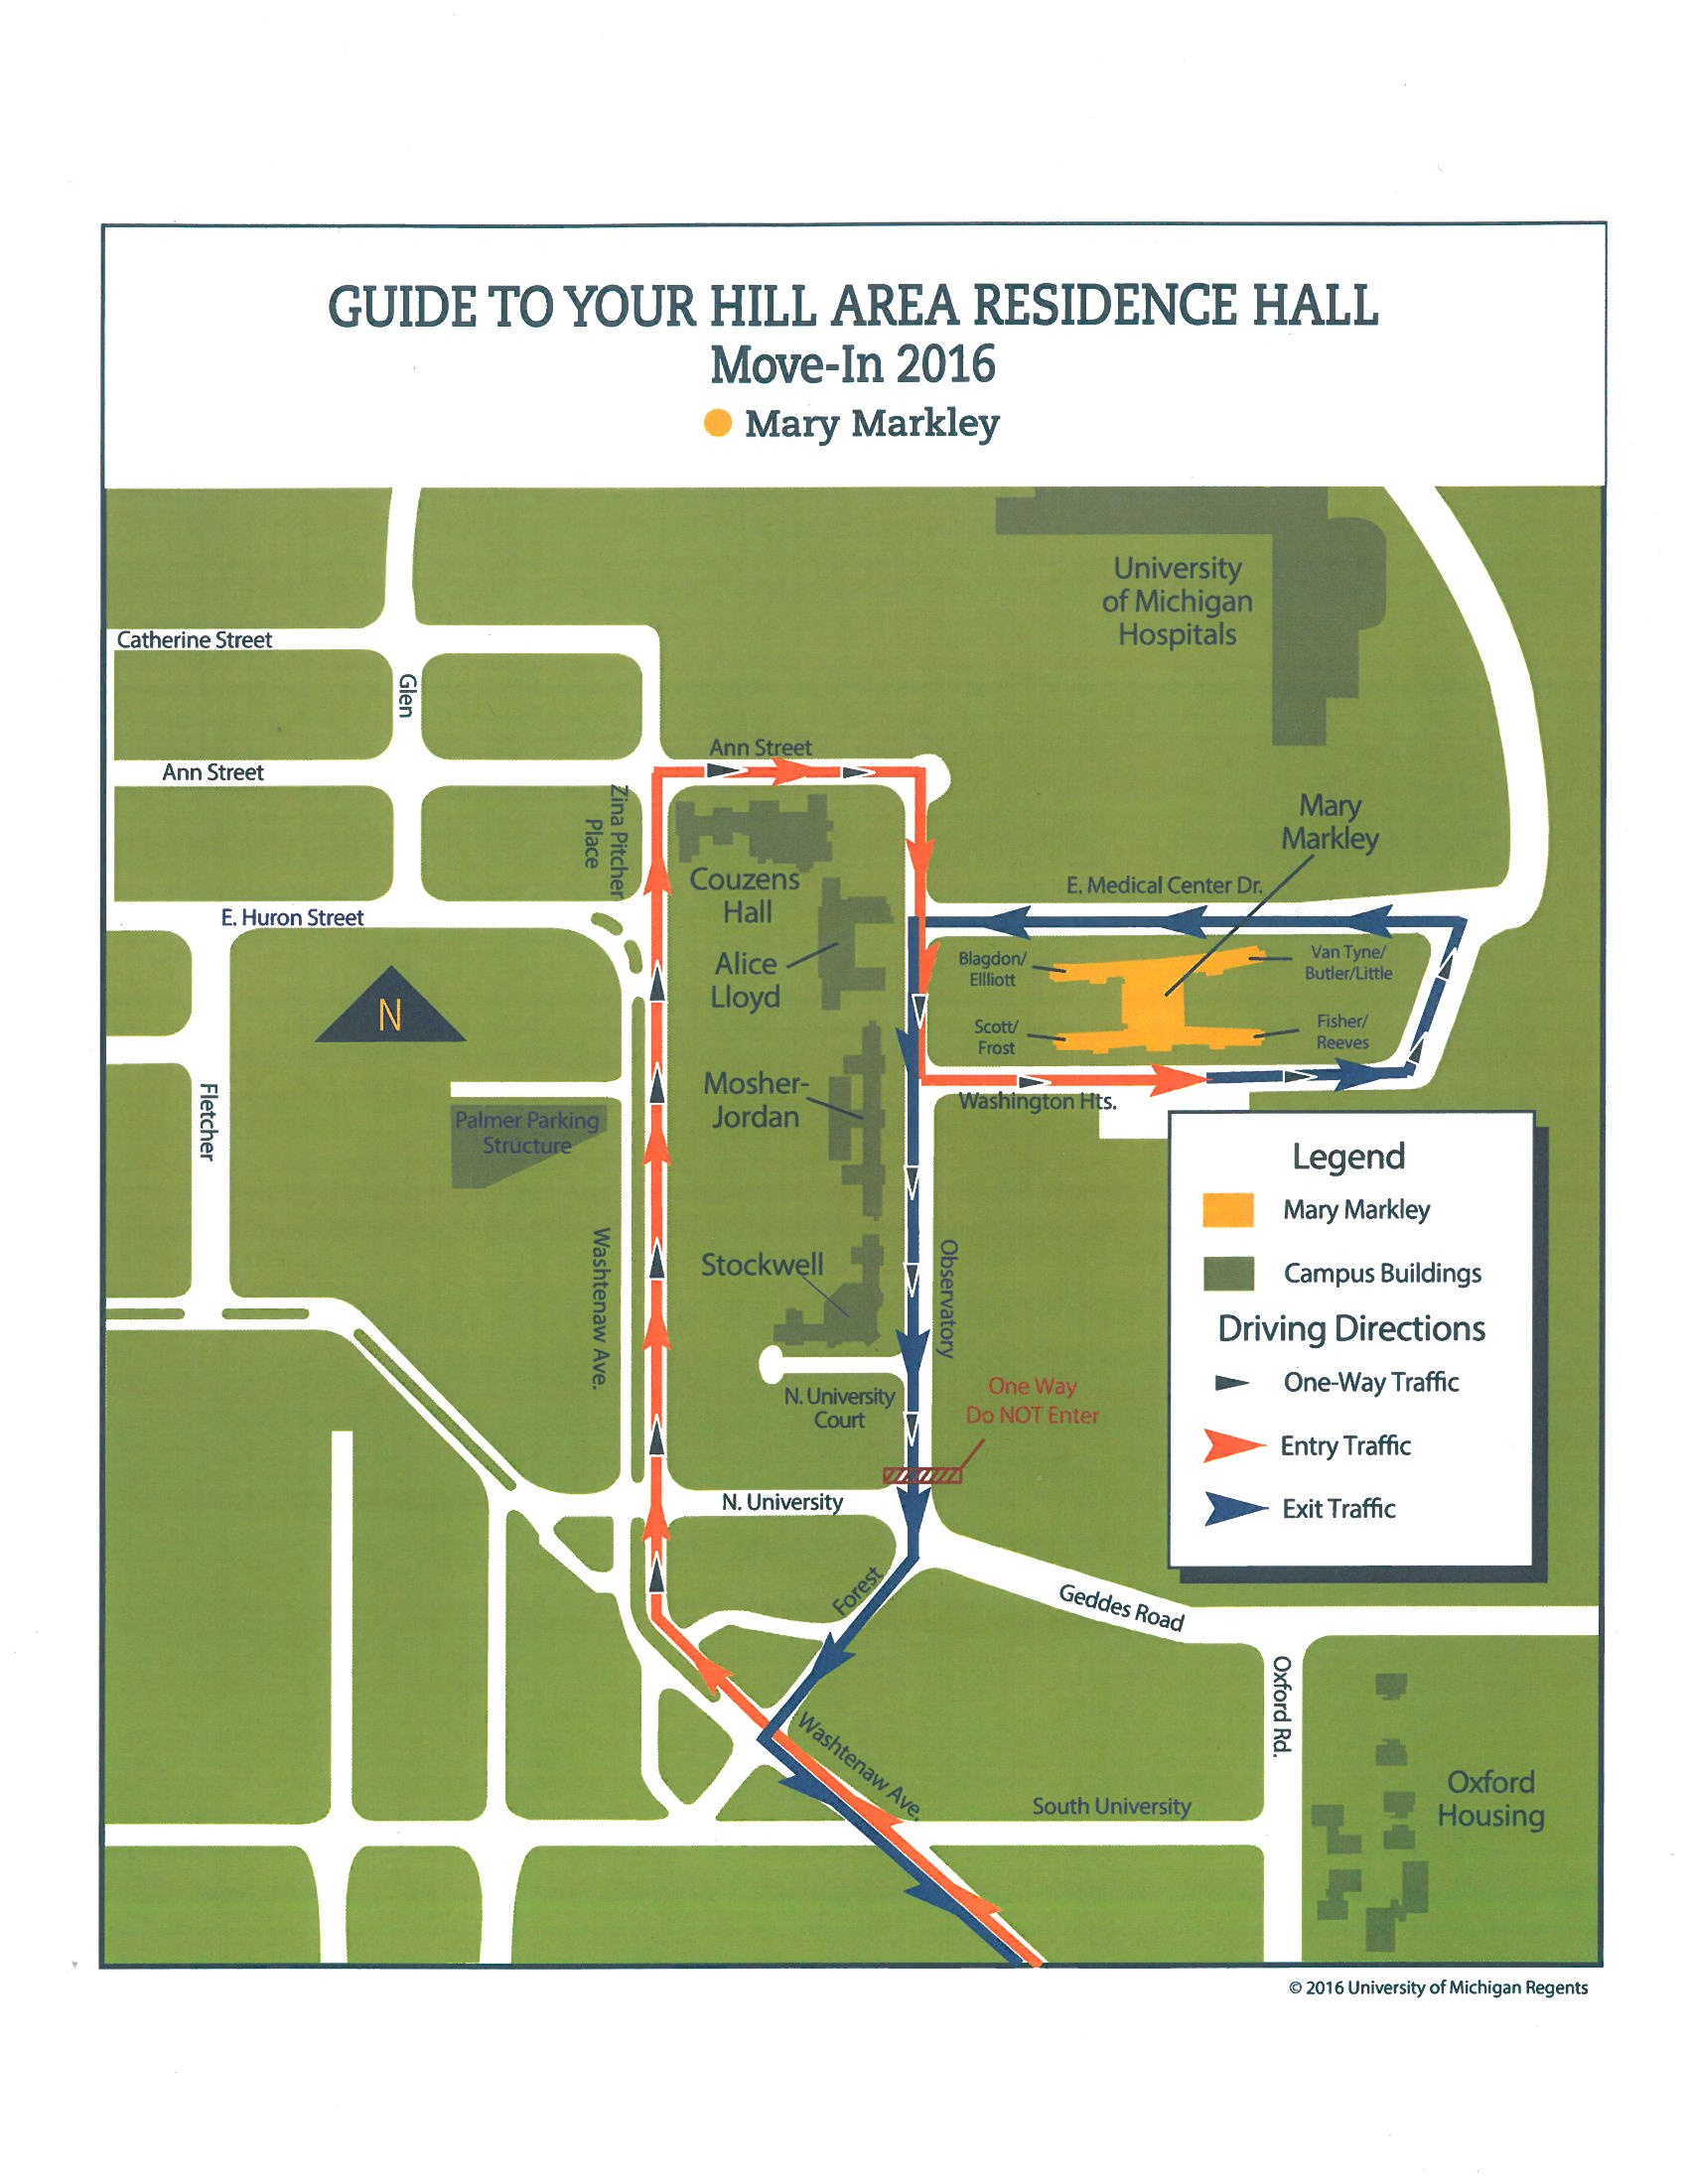 Move-in map